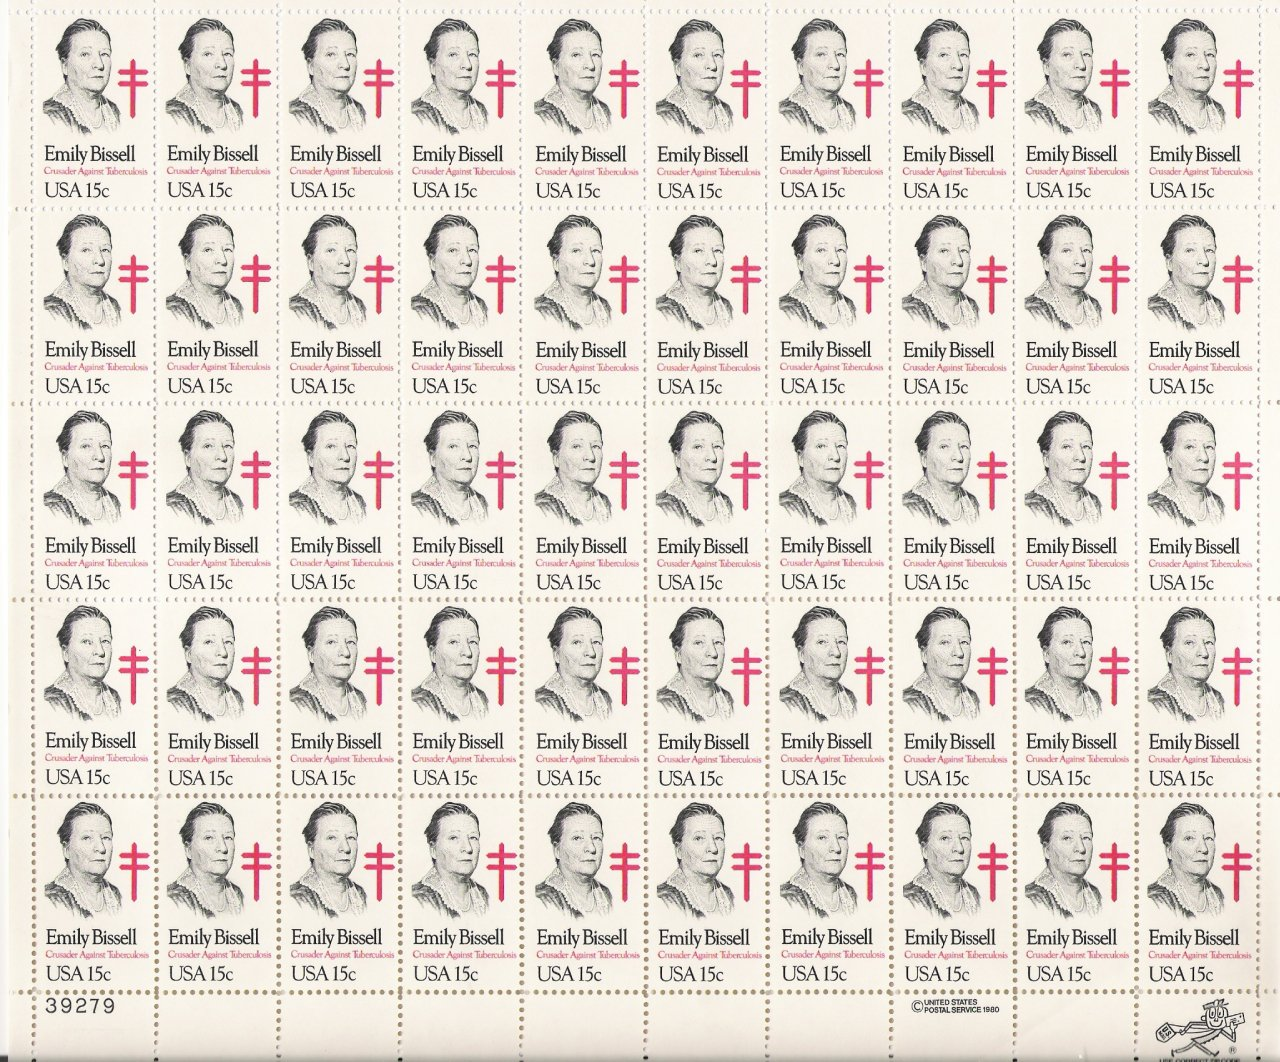 US Scott 1823 - Sheet of 50 - Emily Bissell - Mint Never Hinged